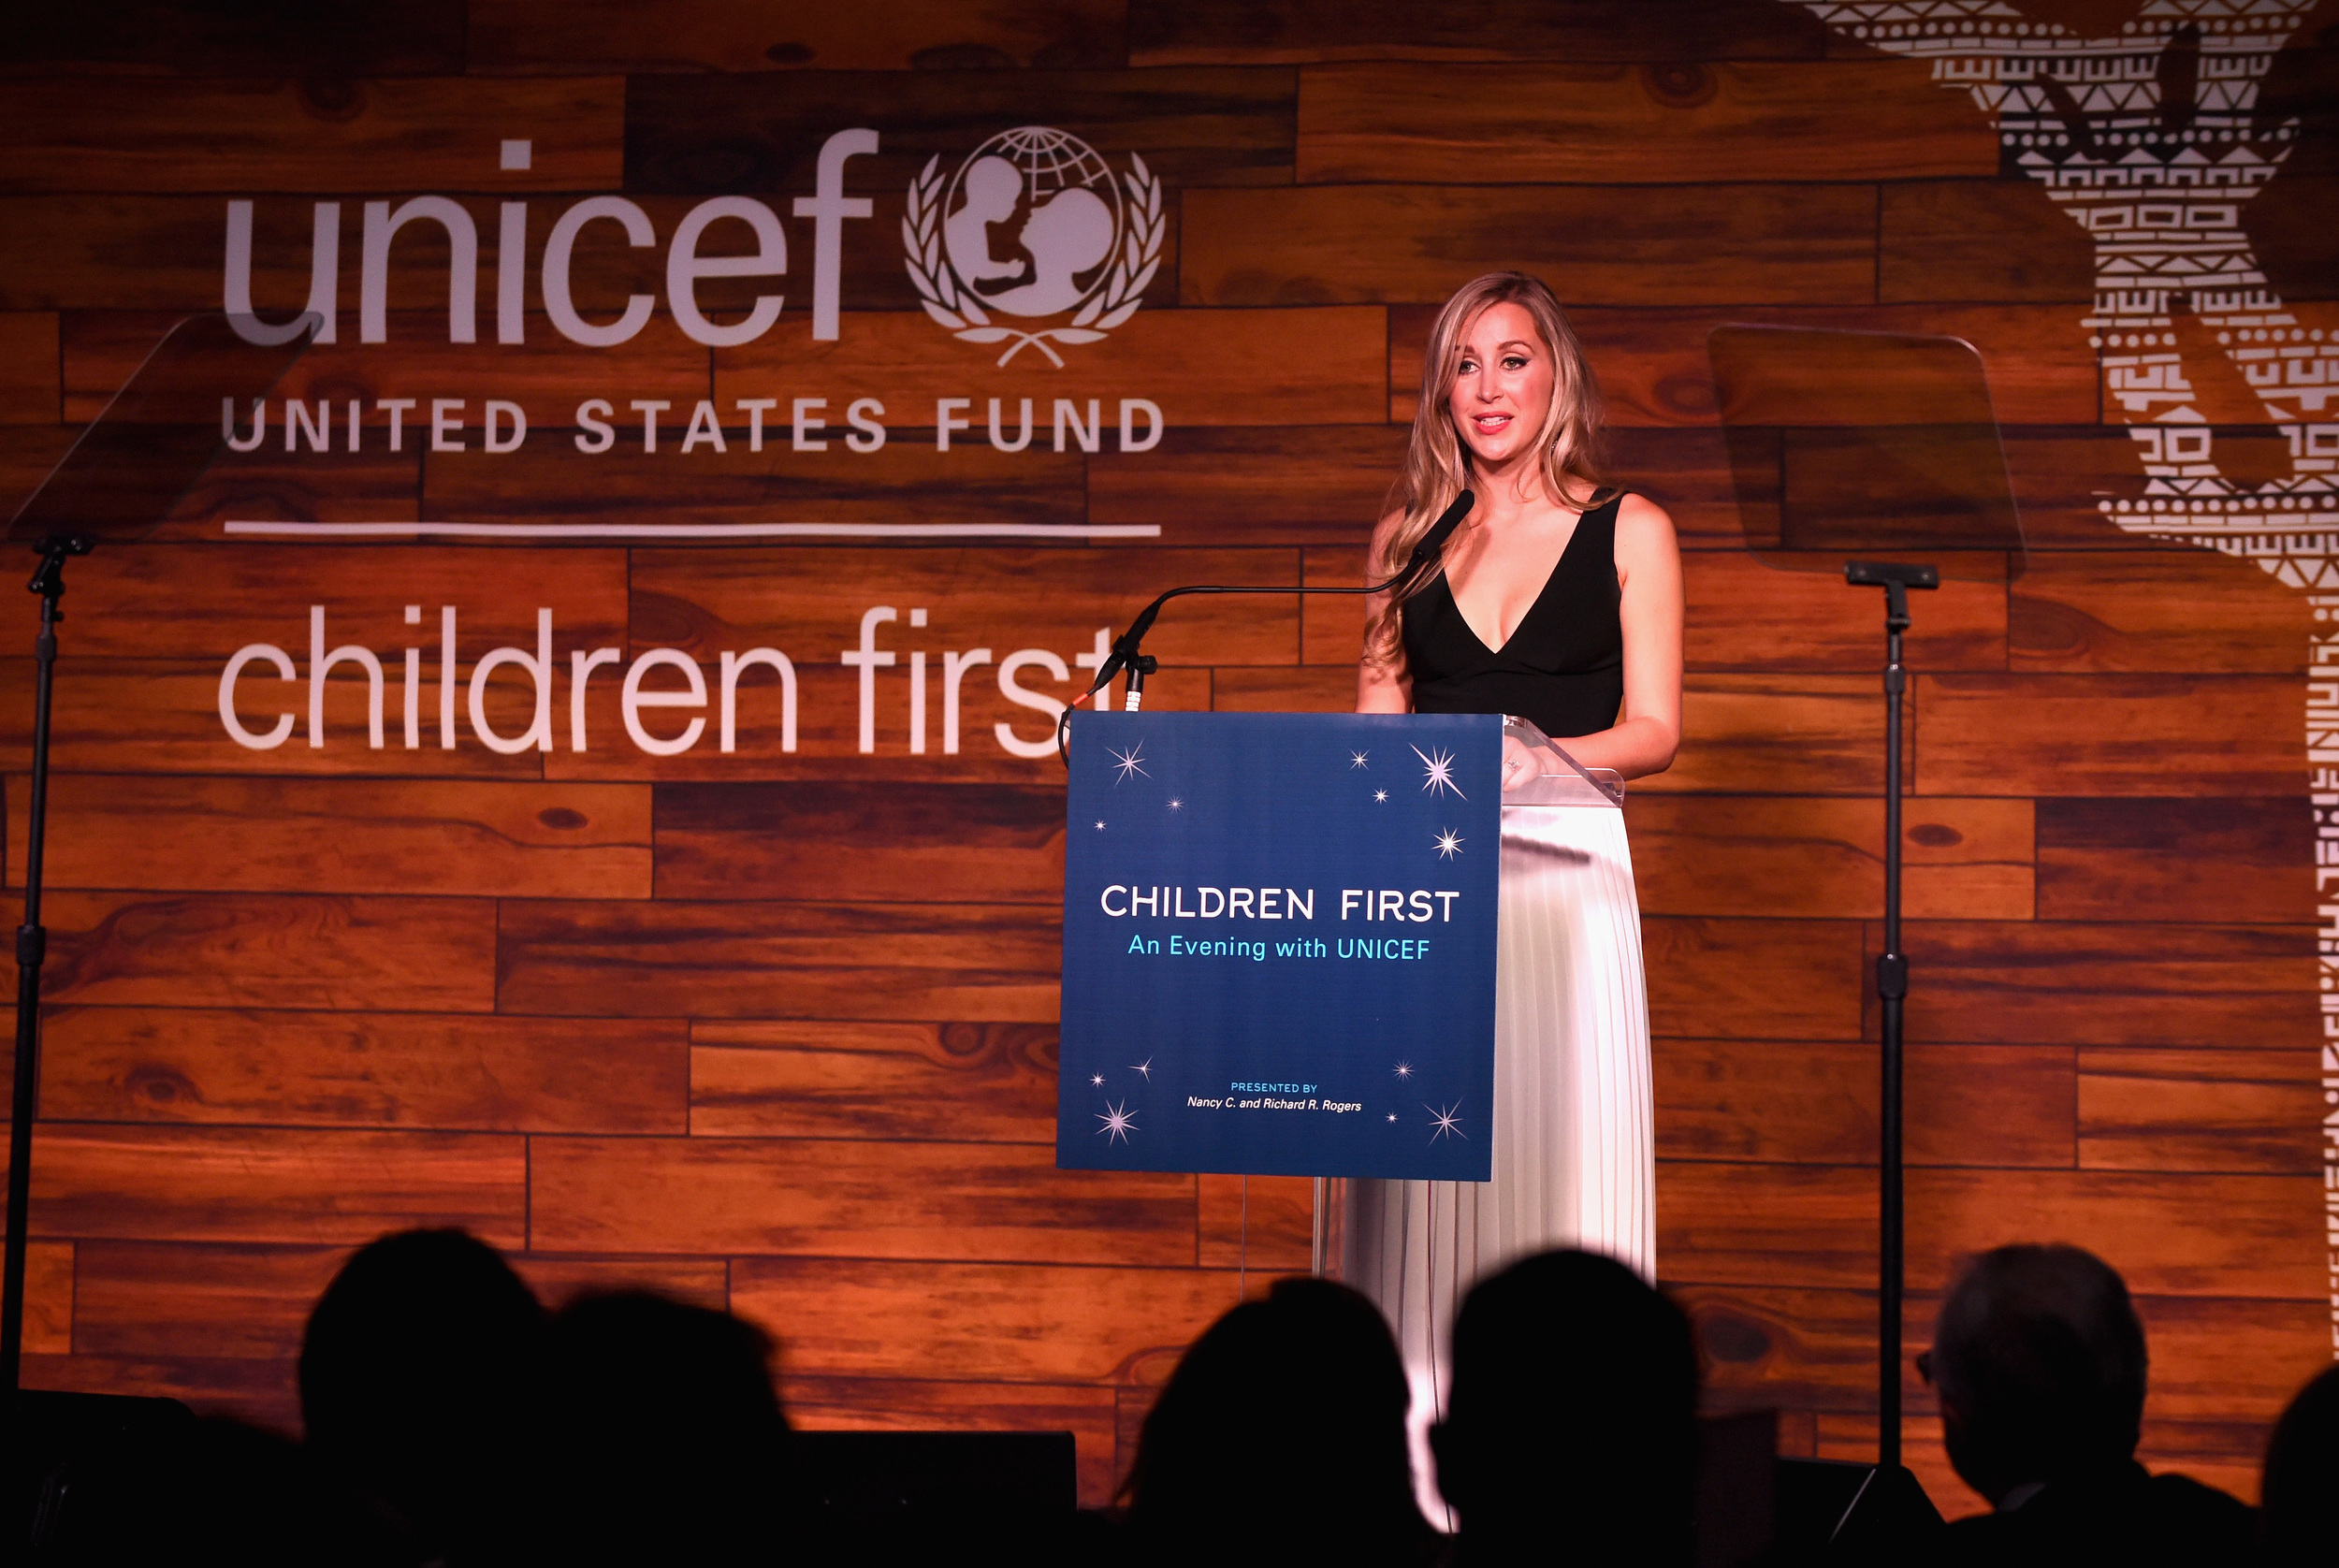 UNICEF Next Generation National Development Committee Chair and recipient of the NextGen Champion for Children award Sterling McDavid. (Photo by Cooper Neill/Getty Images for U.S. Fund for UNICEF)